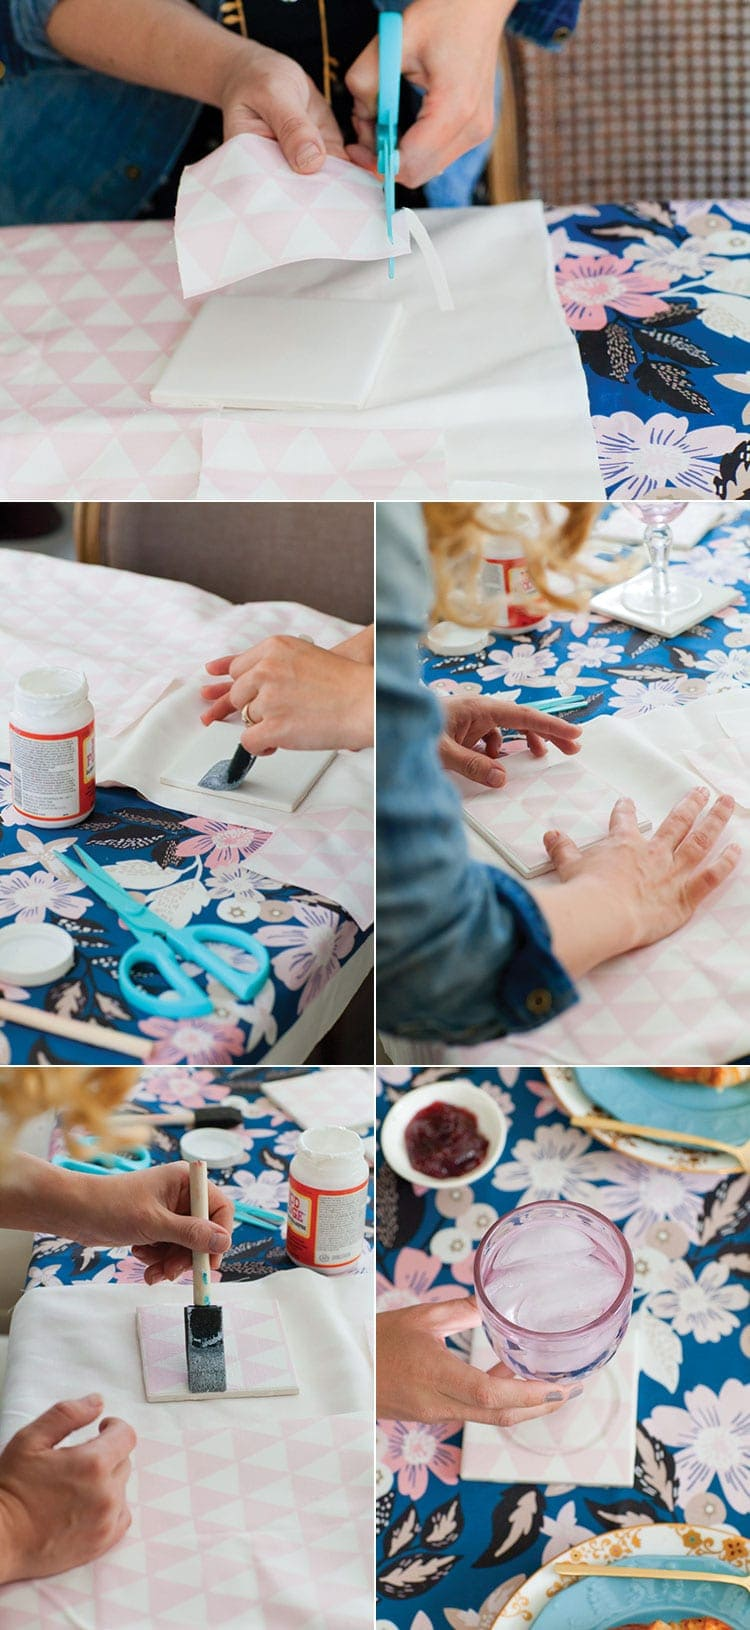 How To Make Diy Fabric Coasters